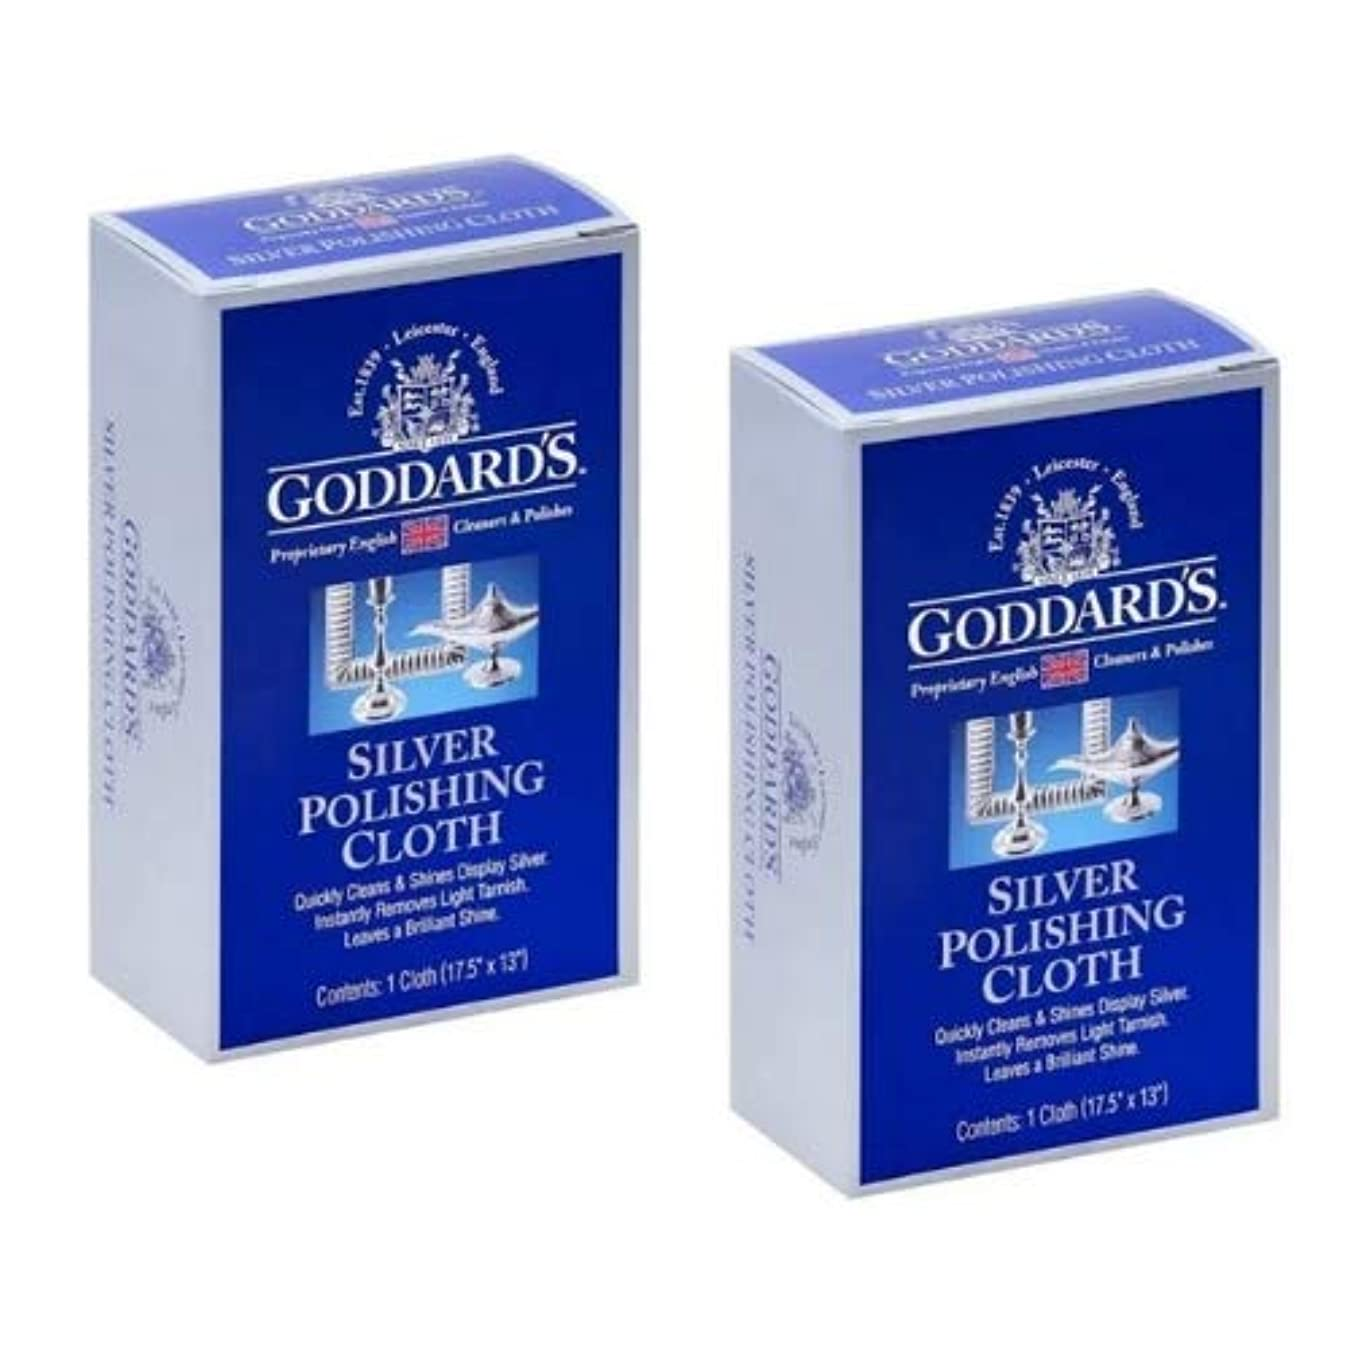 Goddard's Silver Polishing Cloth, Pack of 2